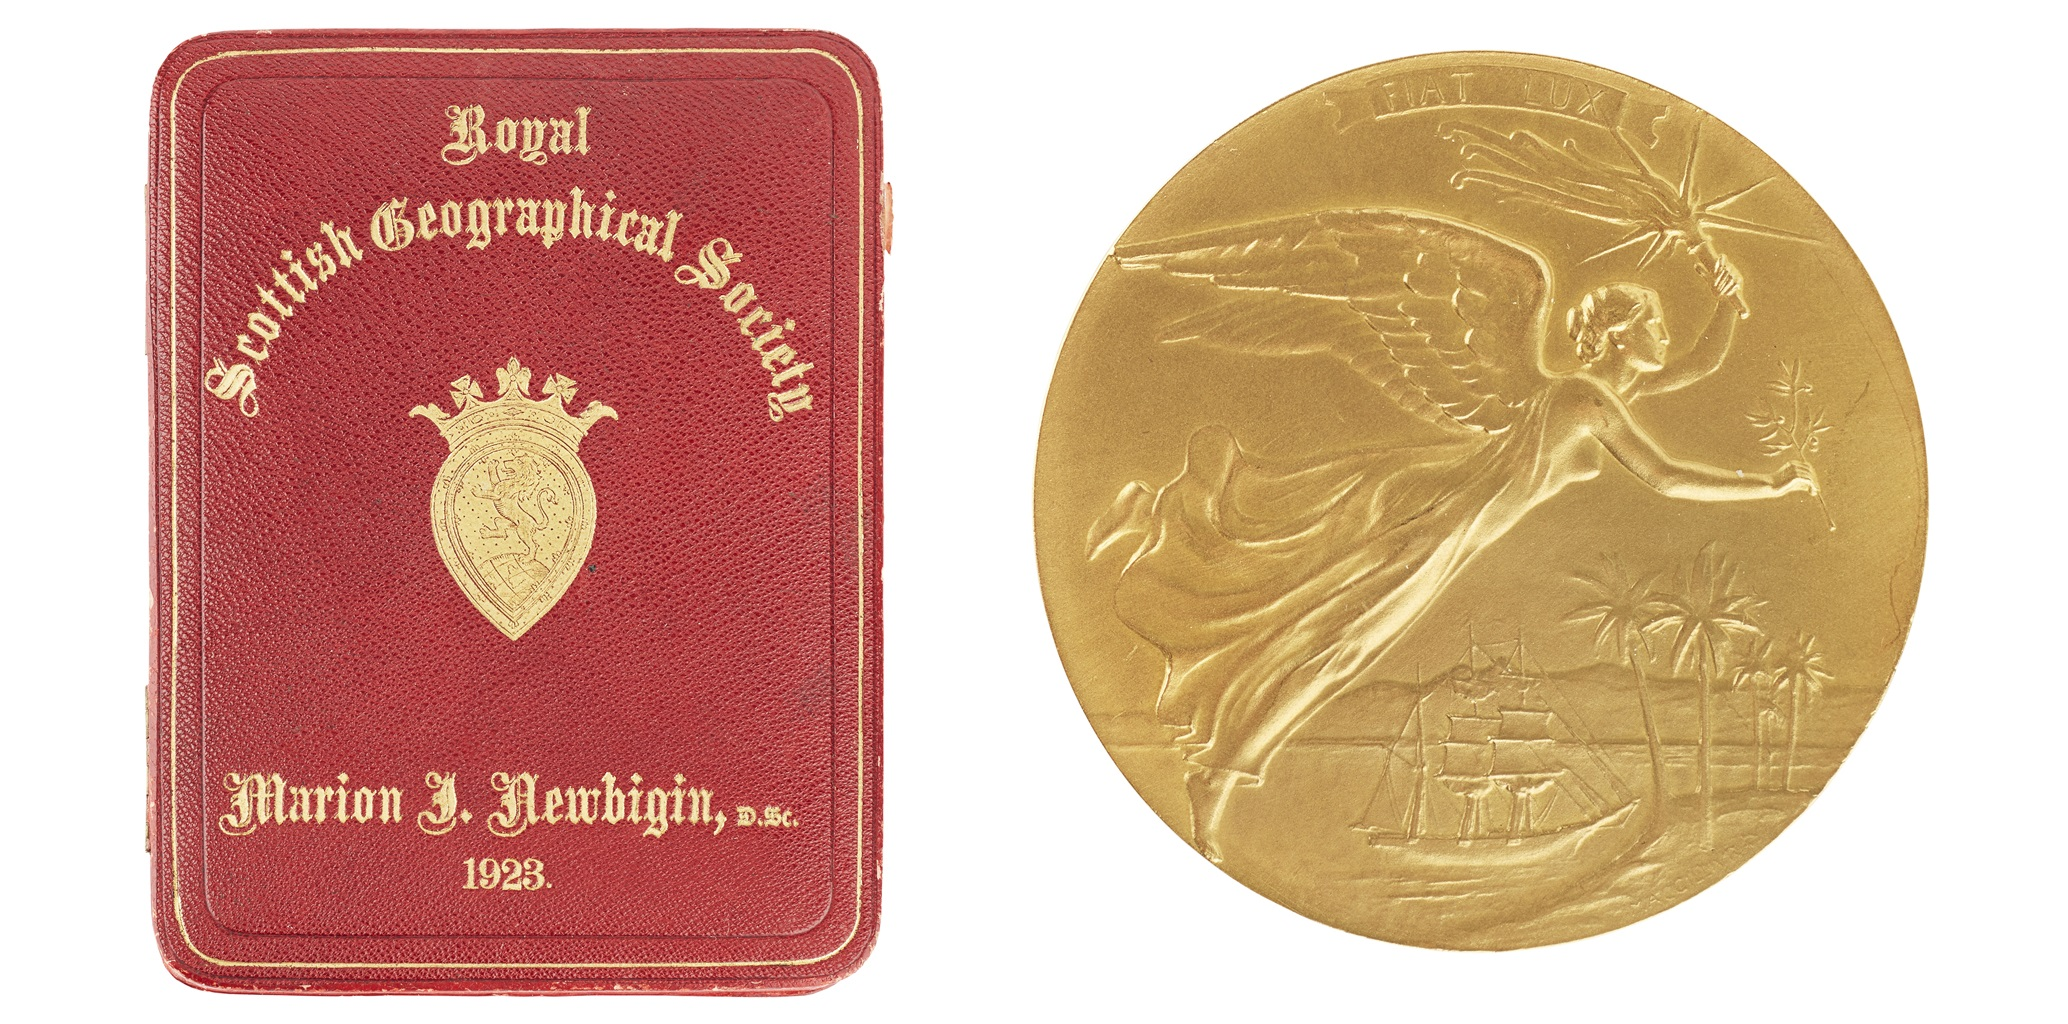 The David Livingstone Medal